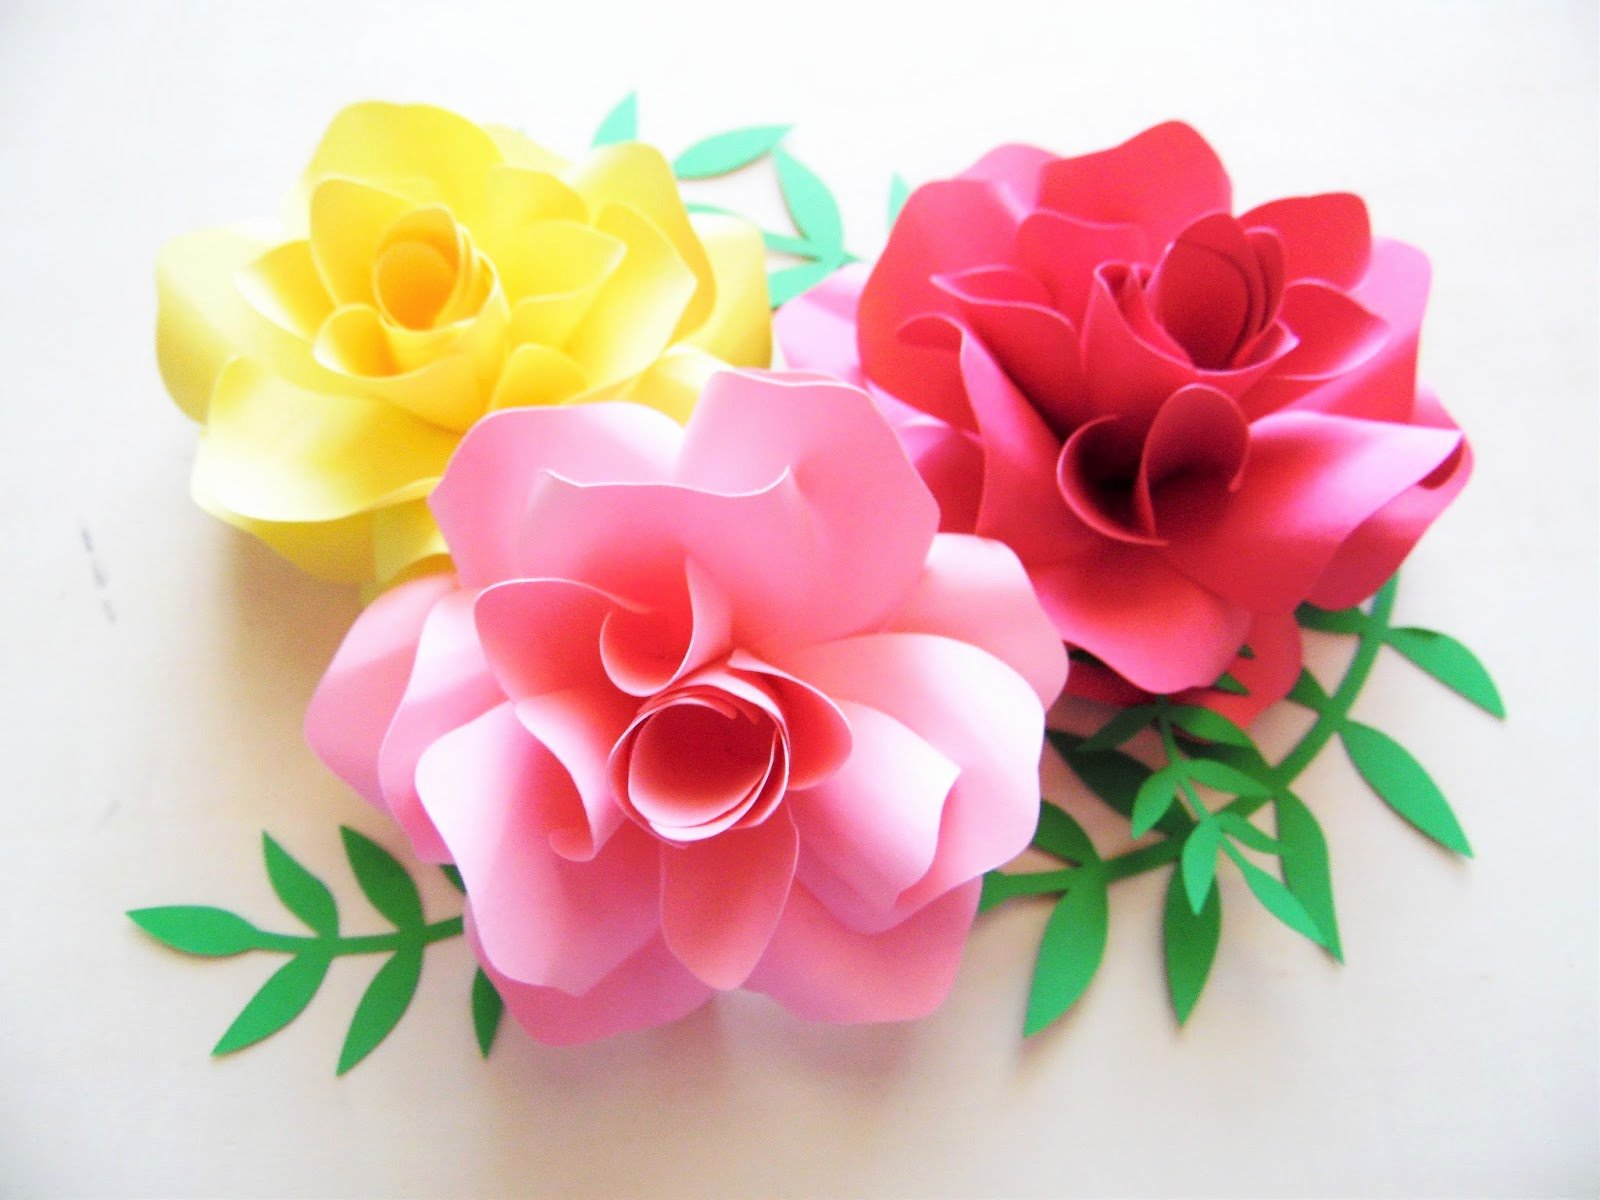 Diy Paper Flower Template Awesome How to Make Diy Paper Roses